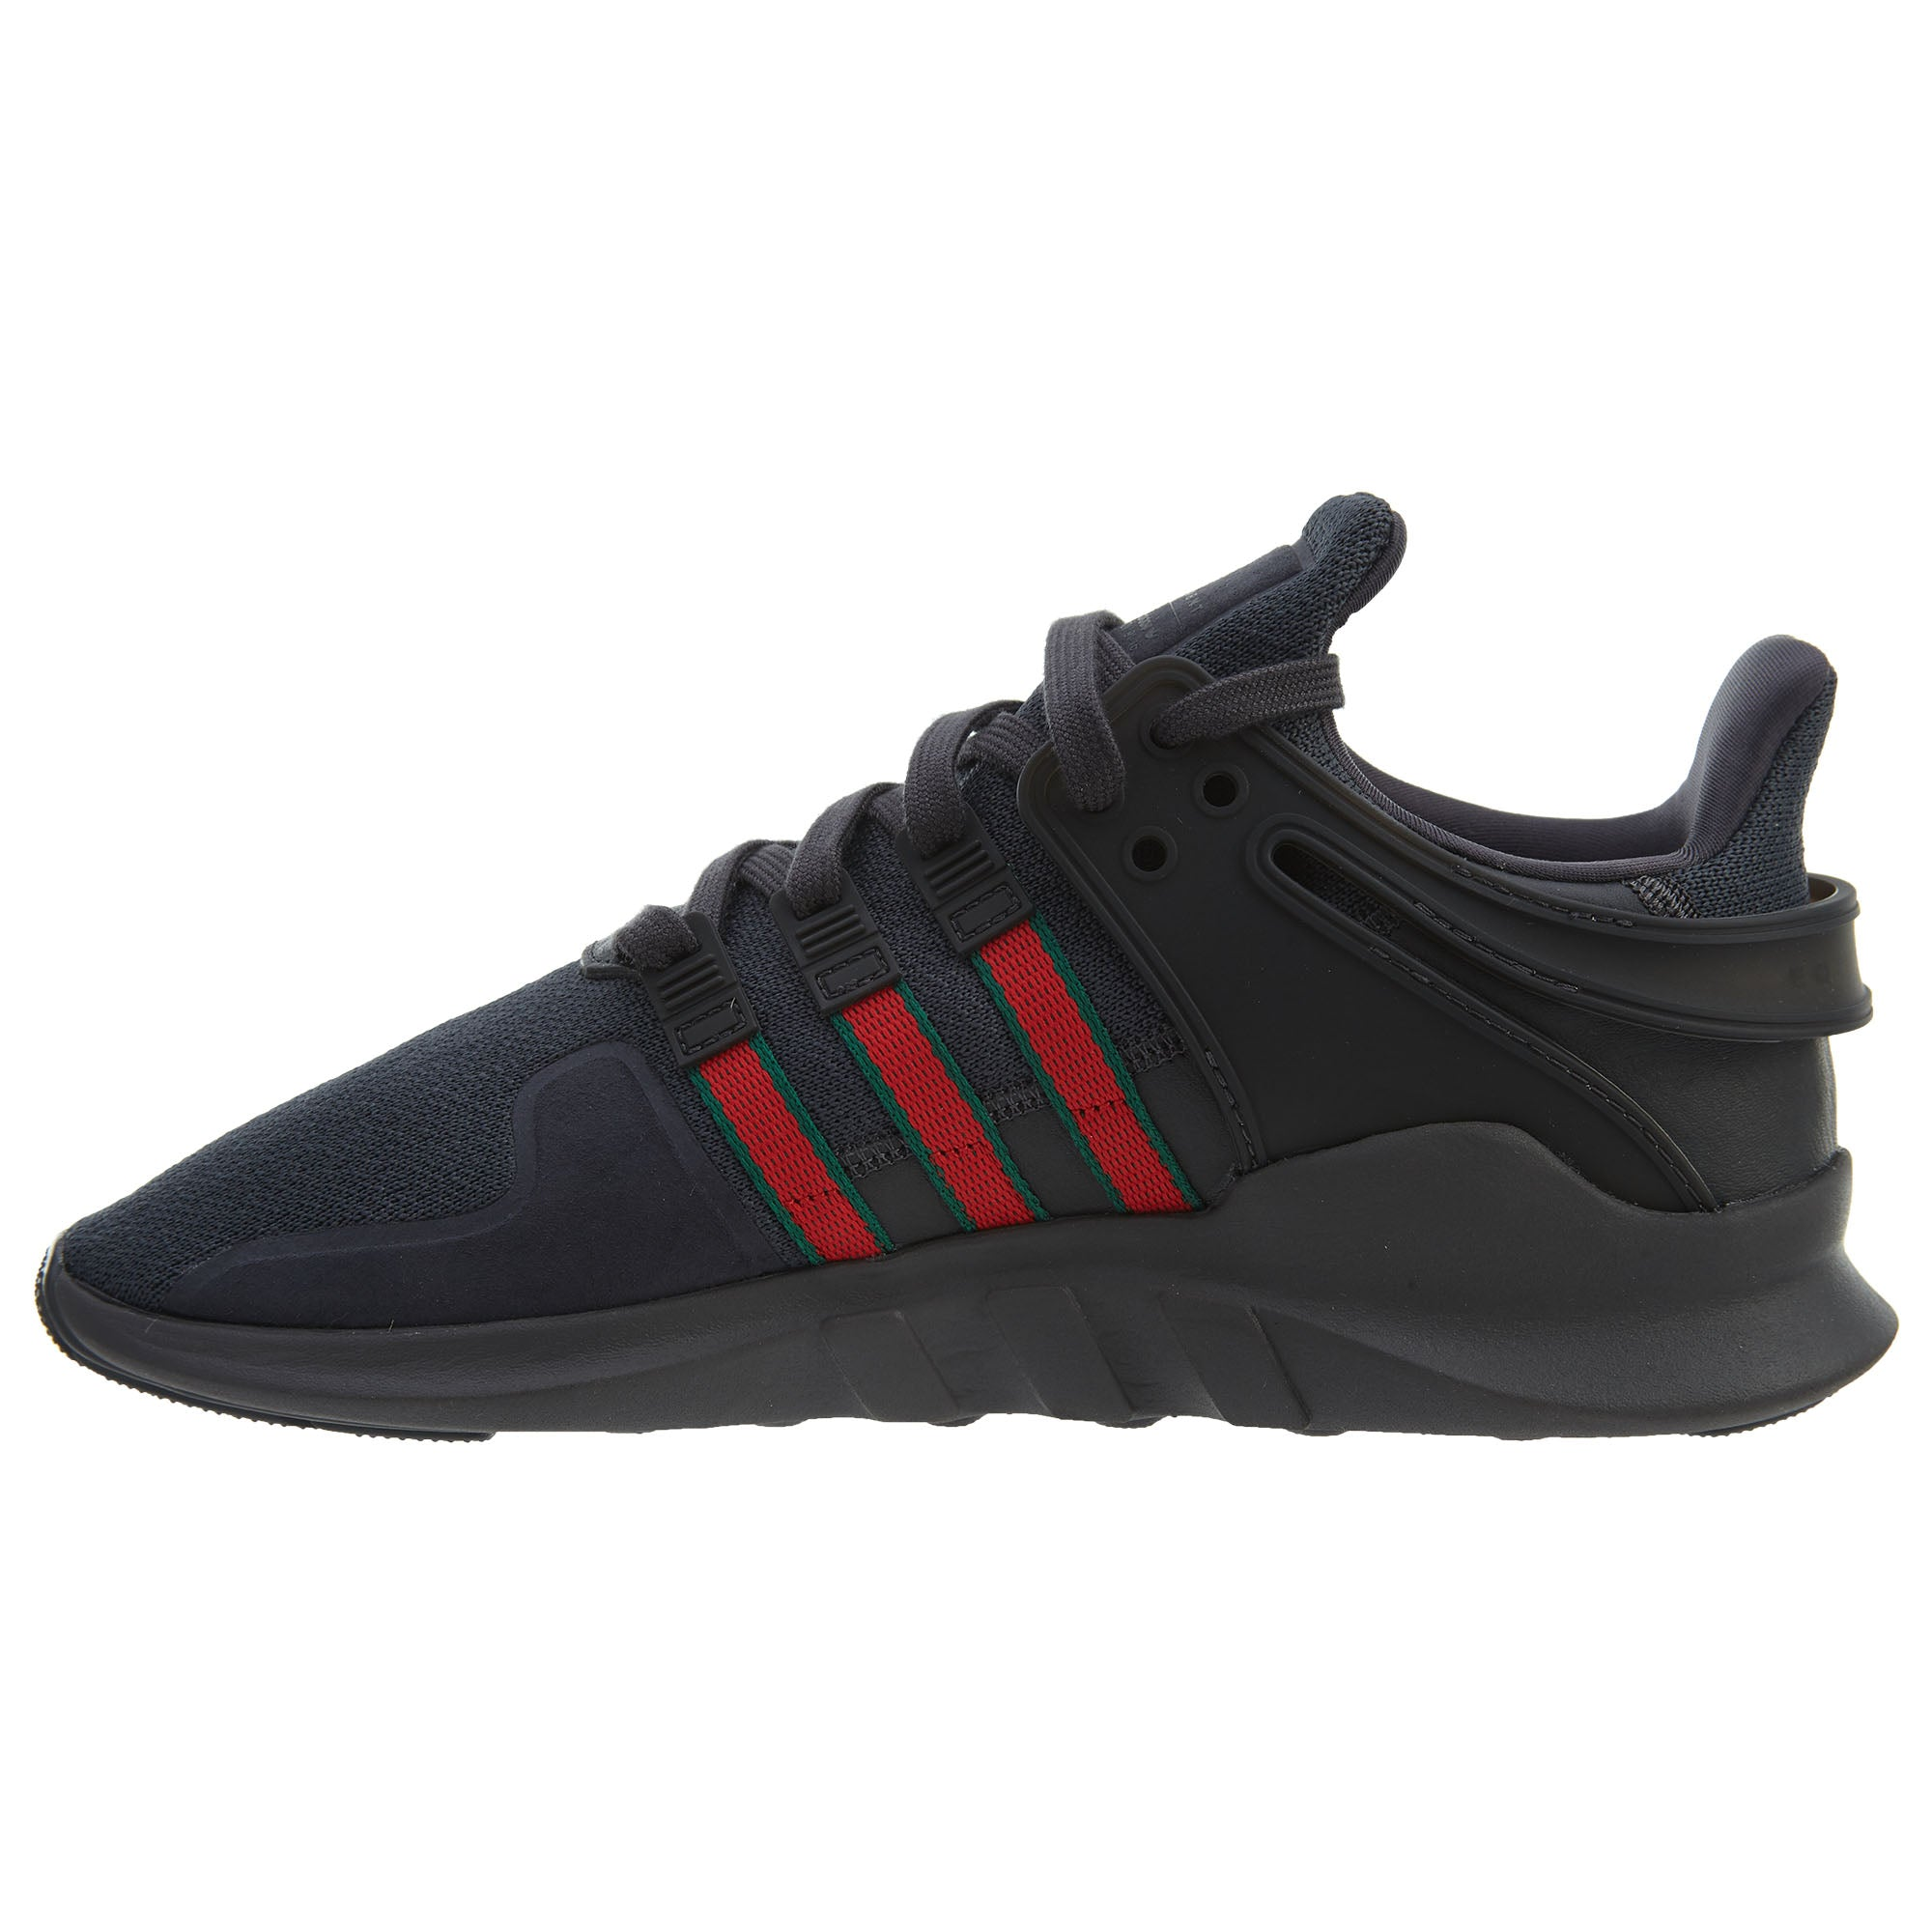 hot sale online 4c5c4 640cc Adidas Eqt Support Adv Mens Style  Bb6777. ADIDAS  Athletic Shoes   Sneakers